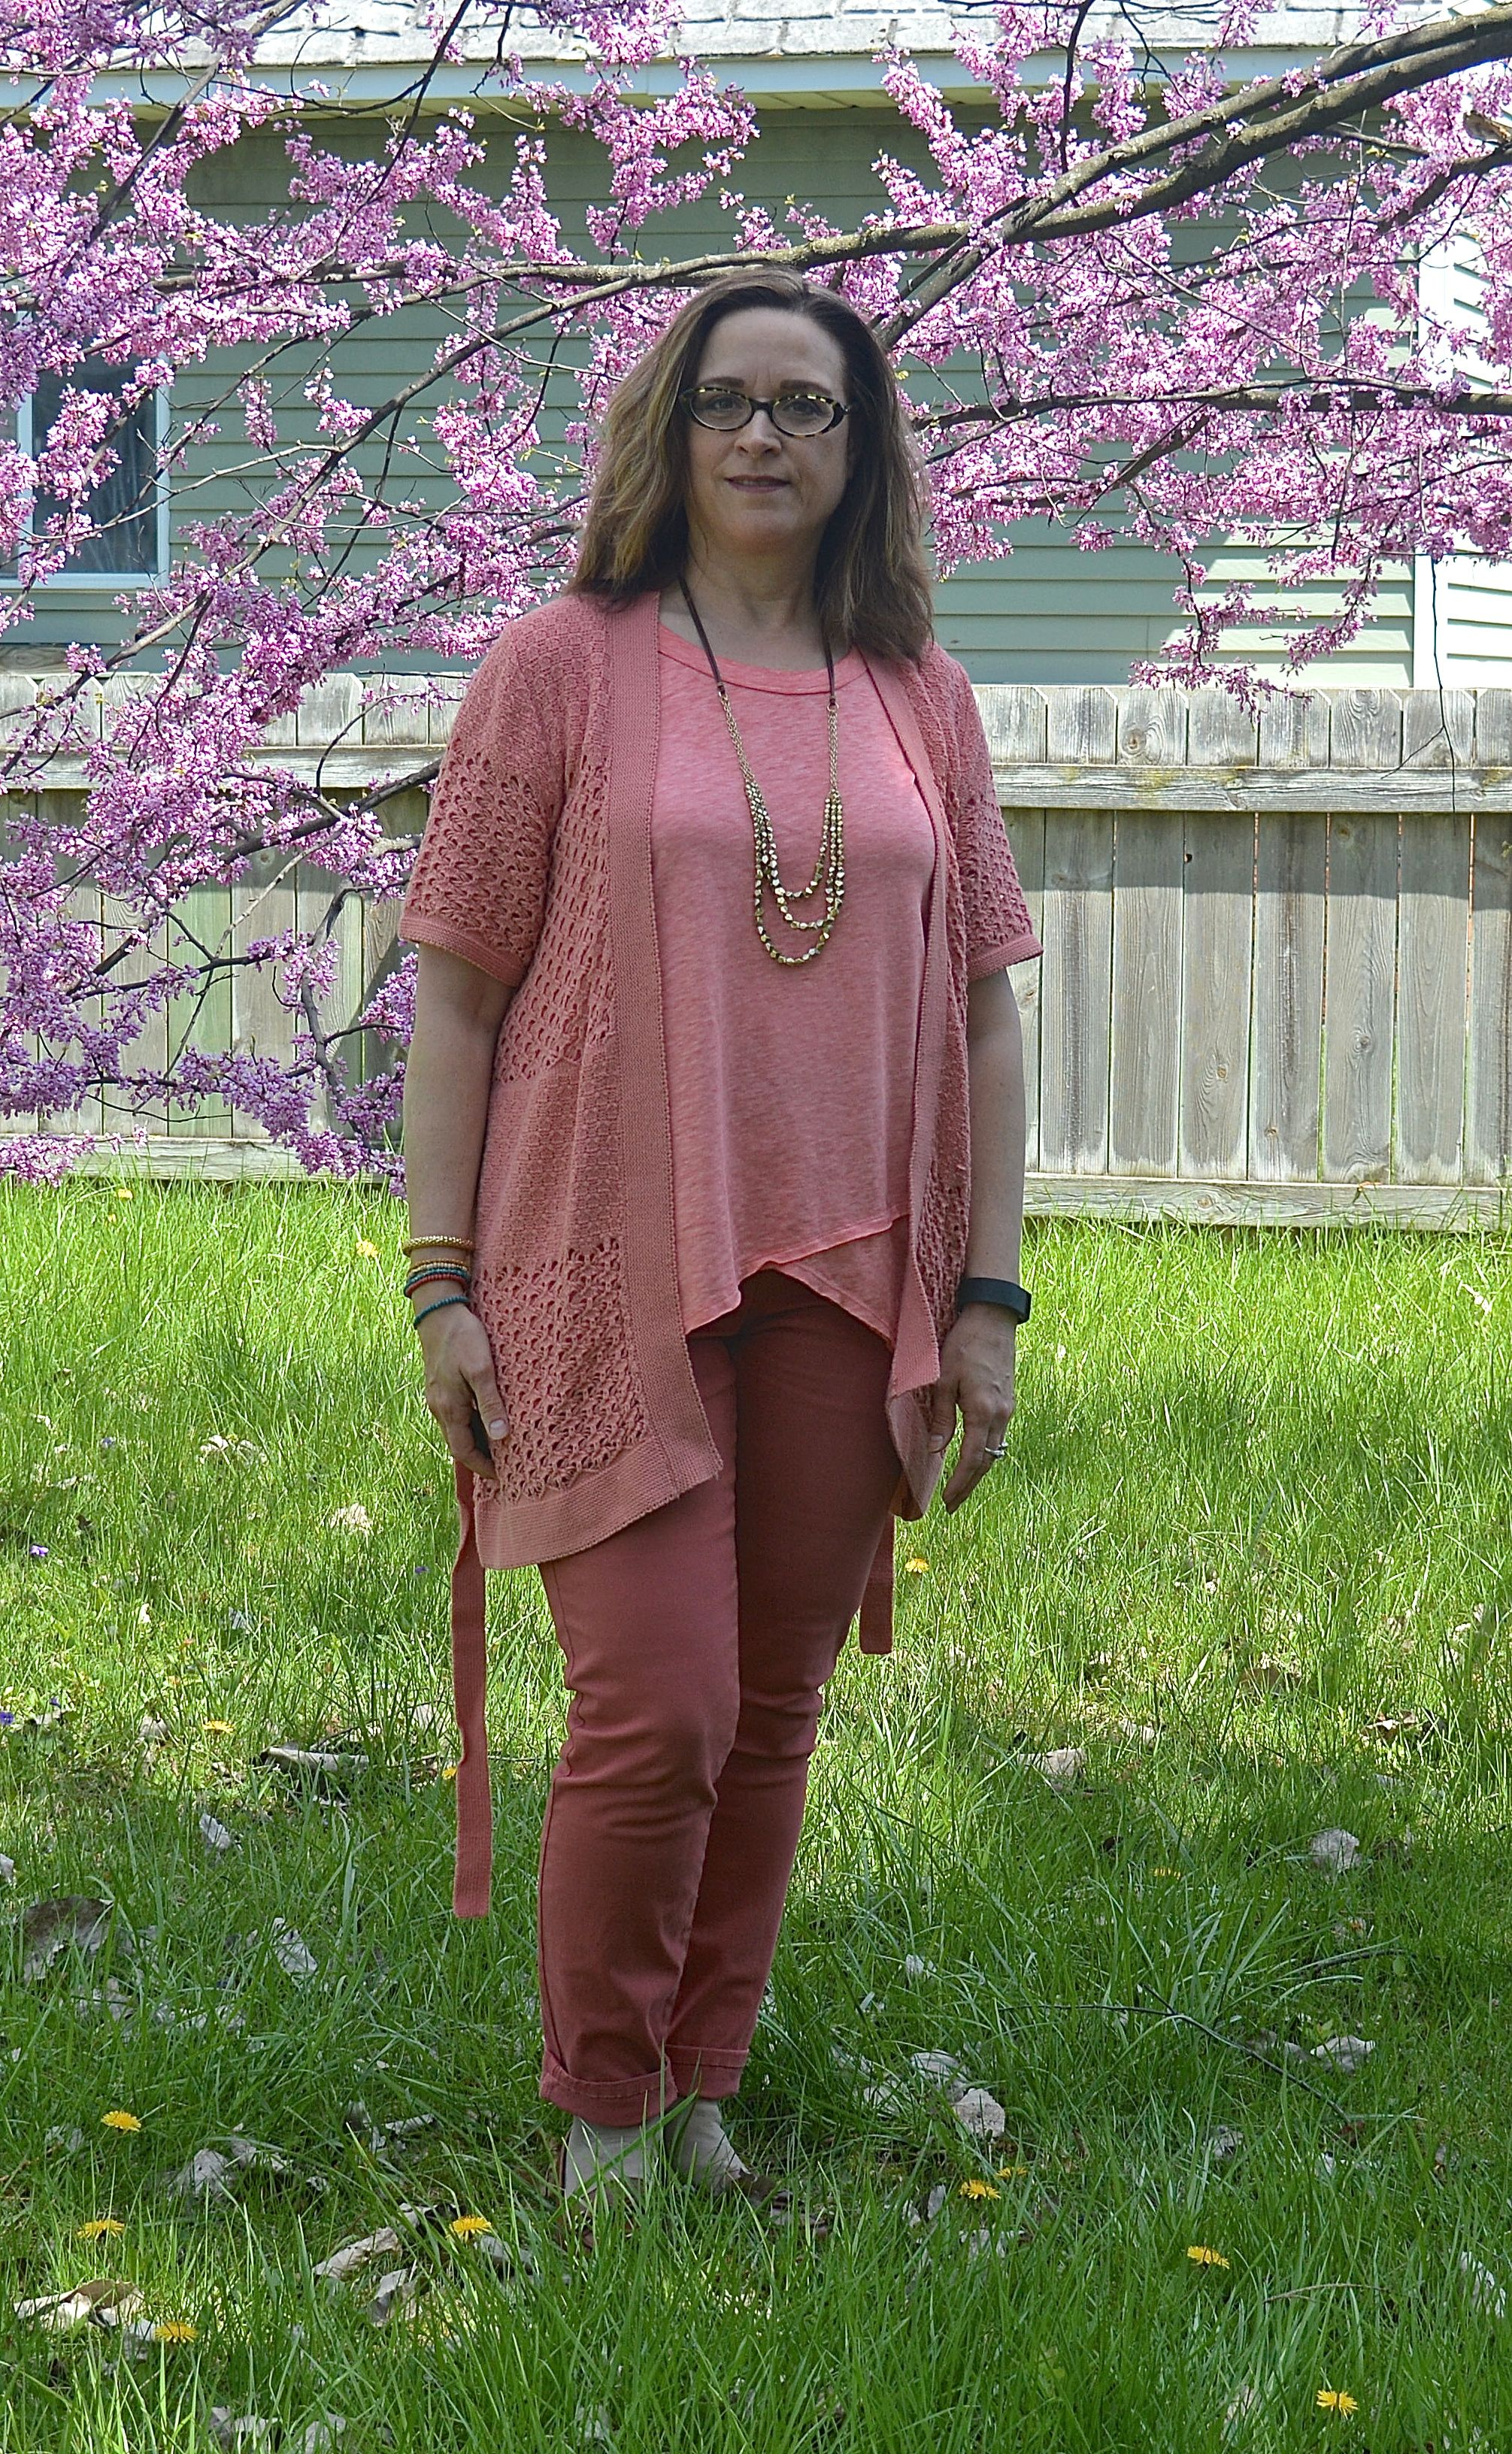 monochrome outfit - coral